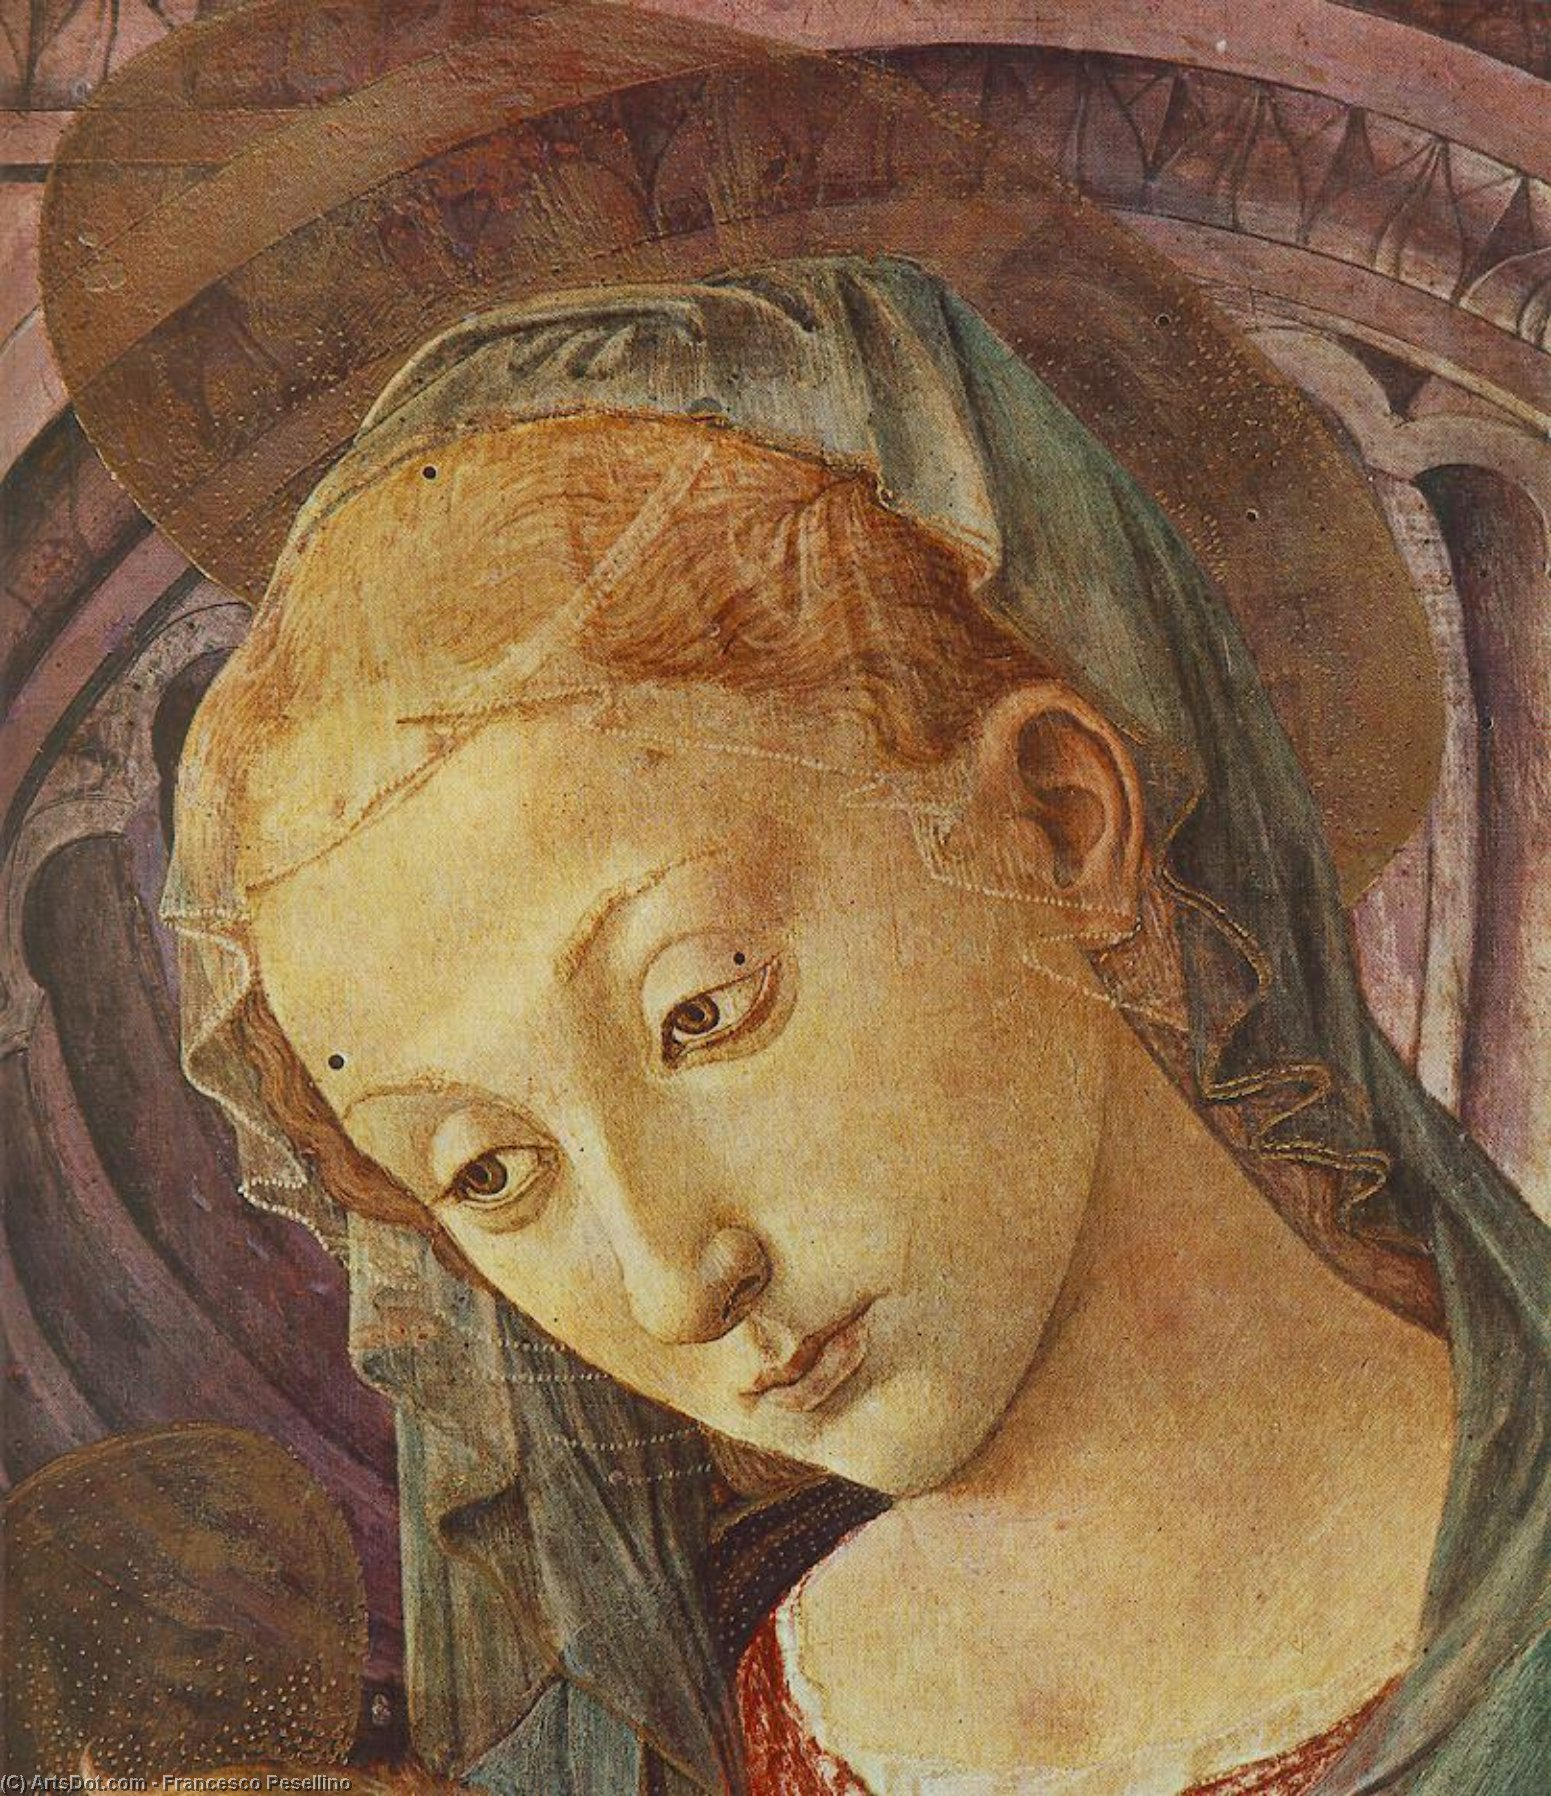 Madonna with Child (detail), 1450 by Francesco Di Stefano Pesellino (1422-1457) | Museum Art Reproductions | ArtsDot.com